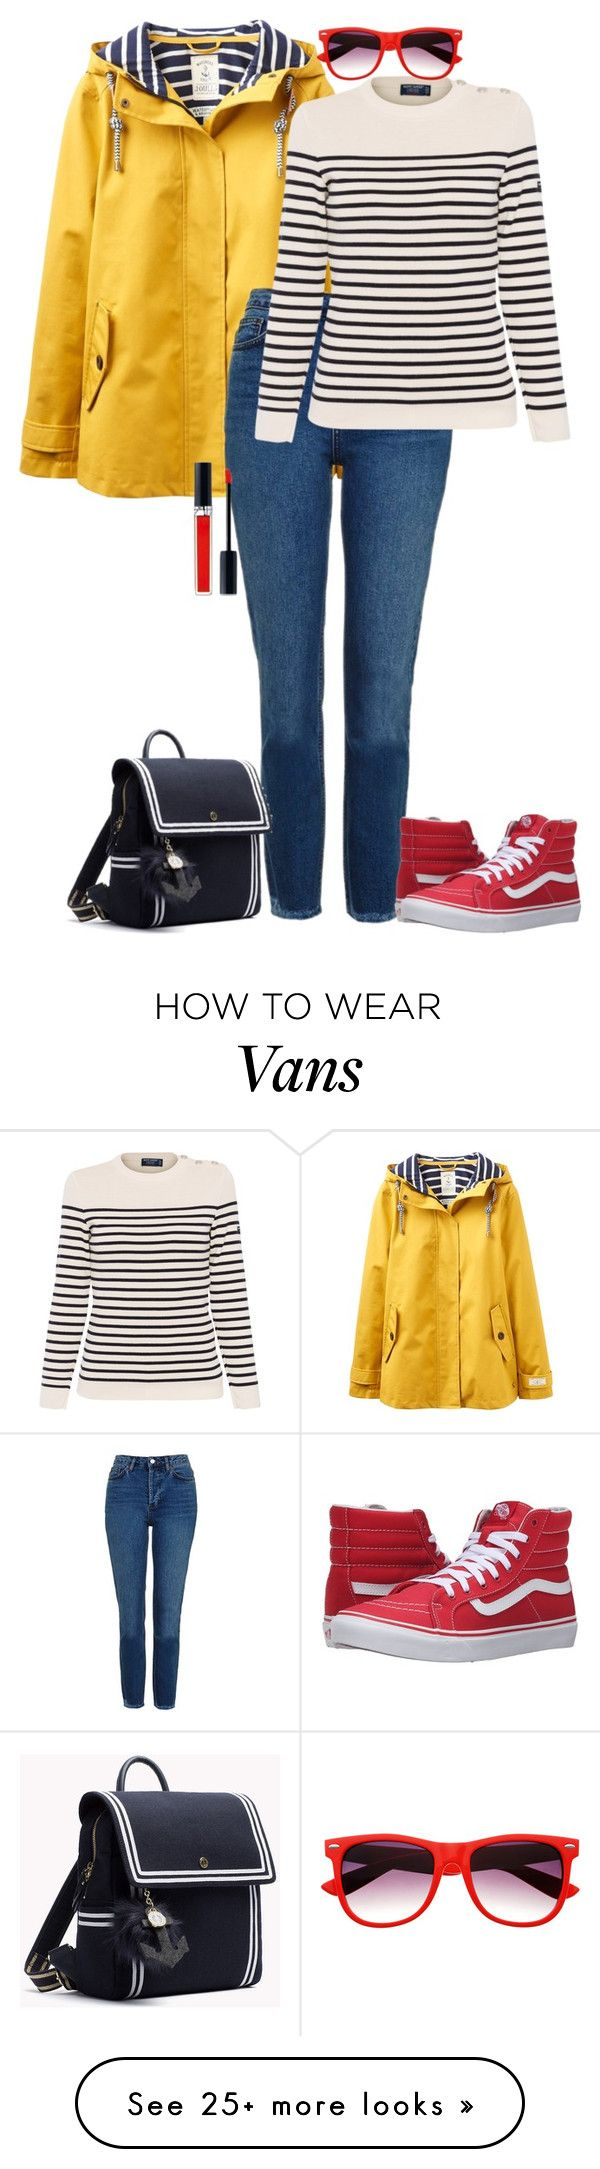 """a little boat trip in autumn"" by lila77 on Polyvore featuring Joules, Topshop, Saint James, Vans and Christian Dior"